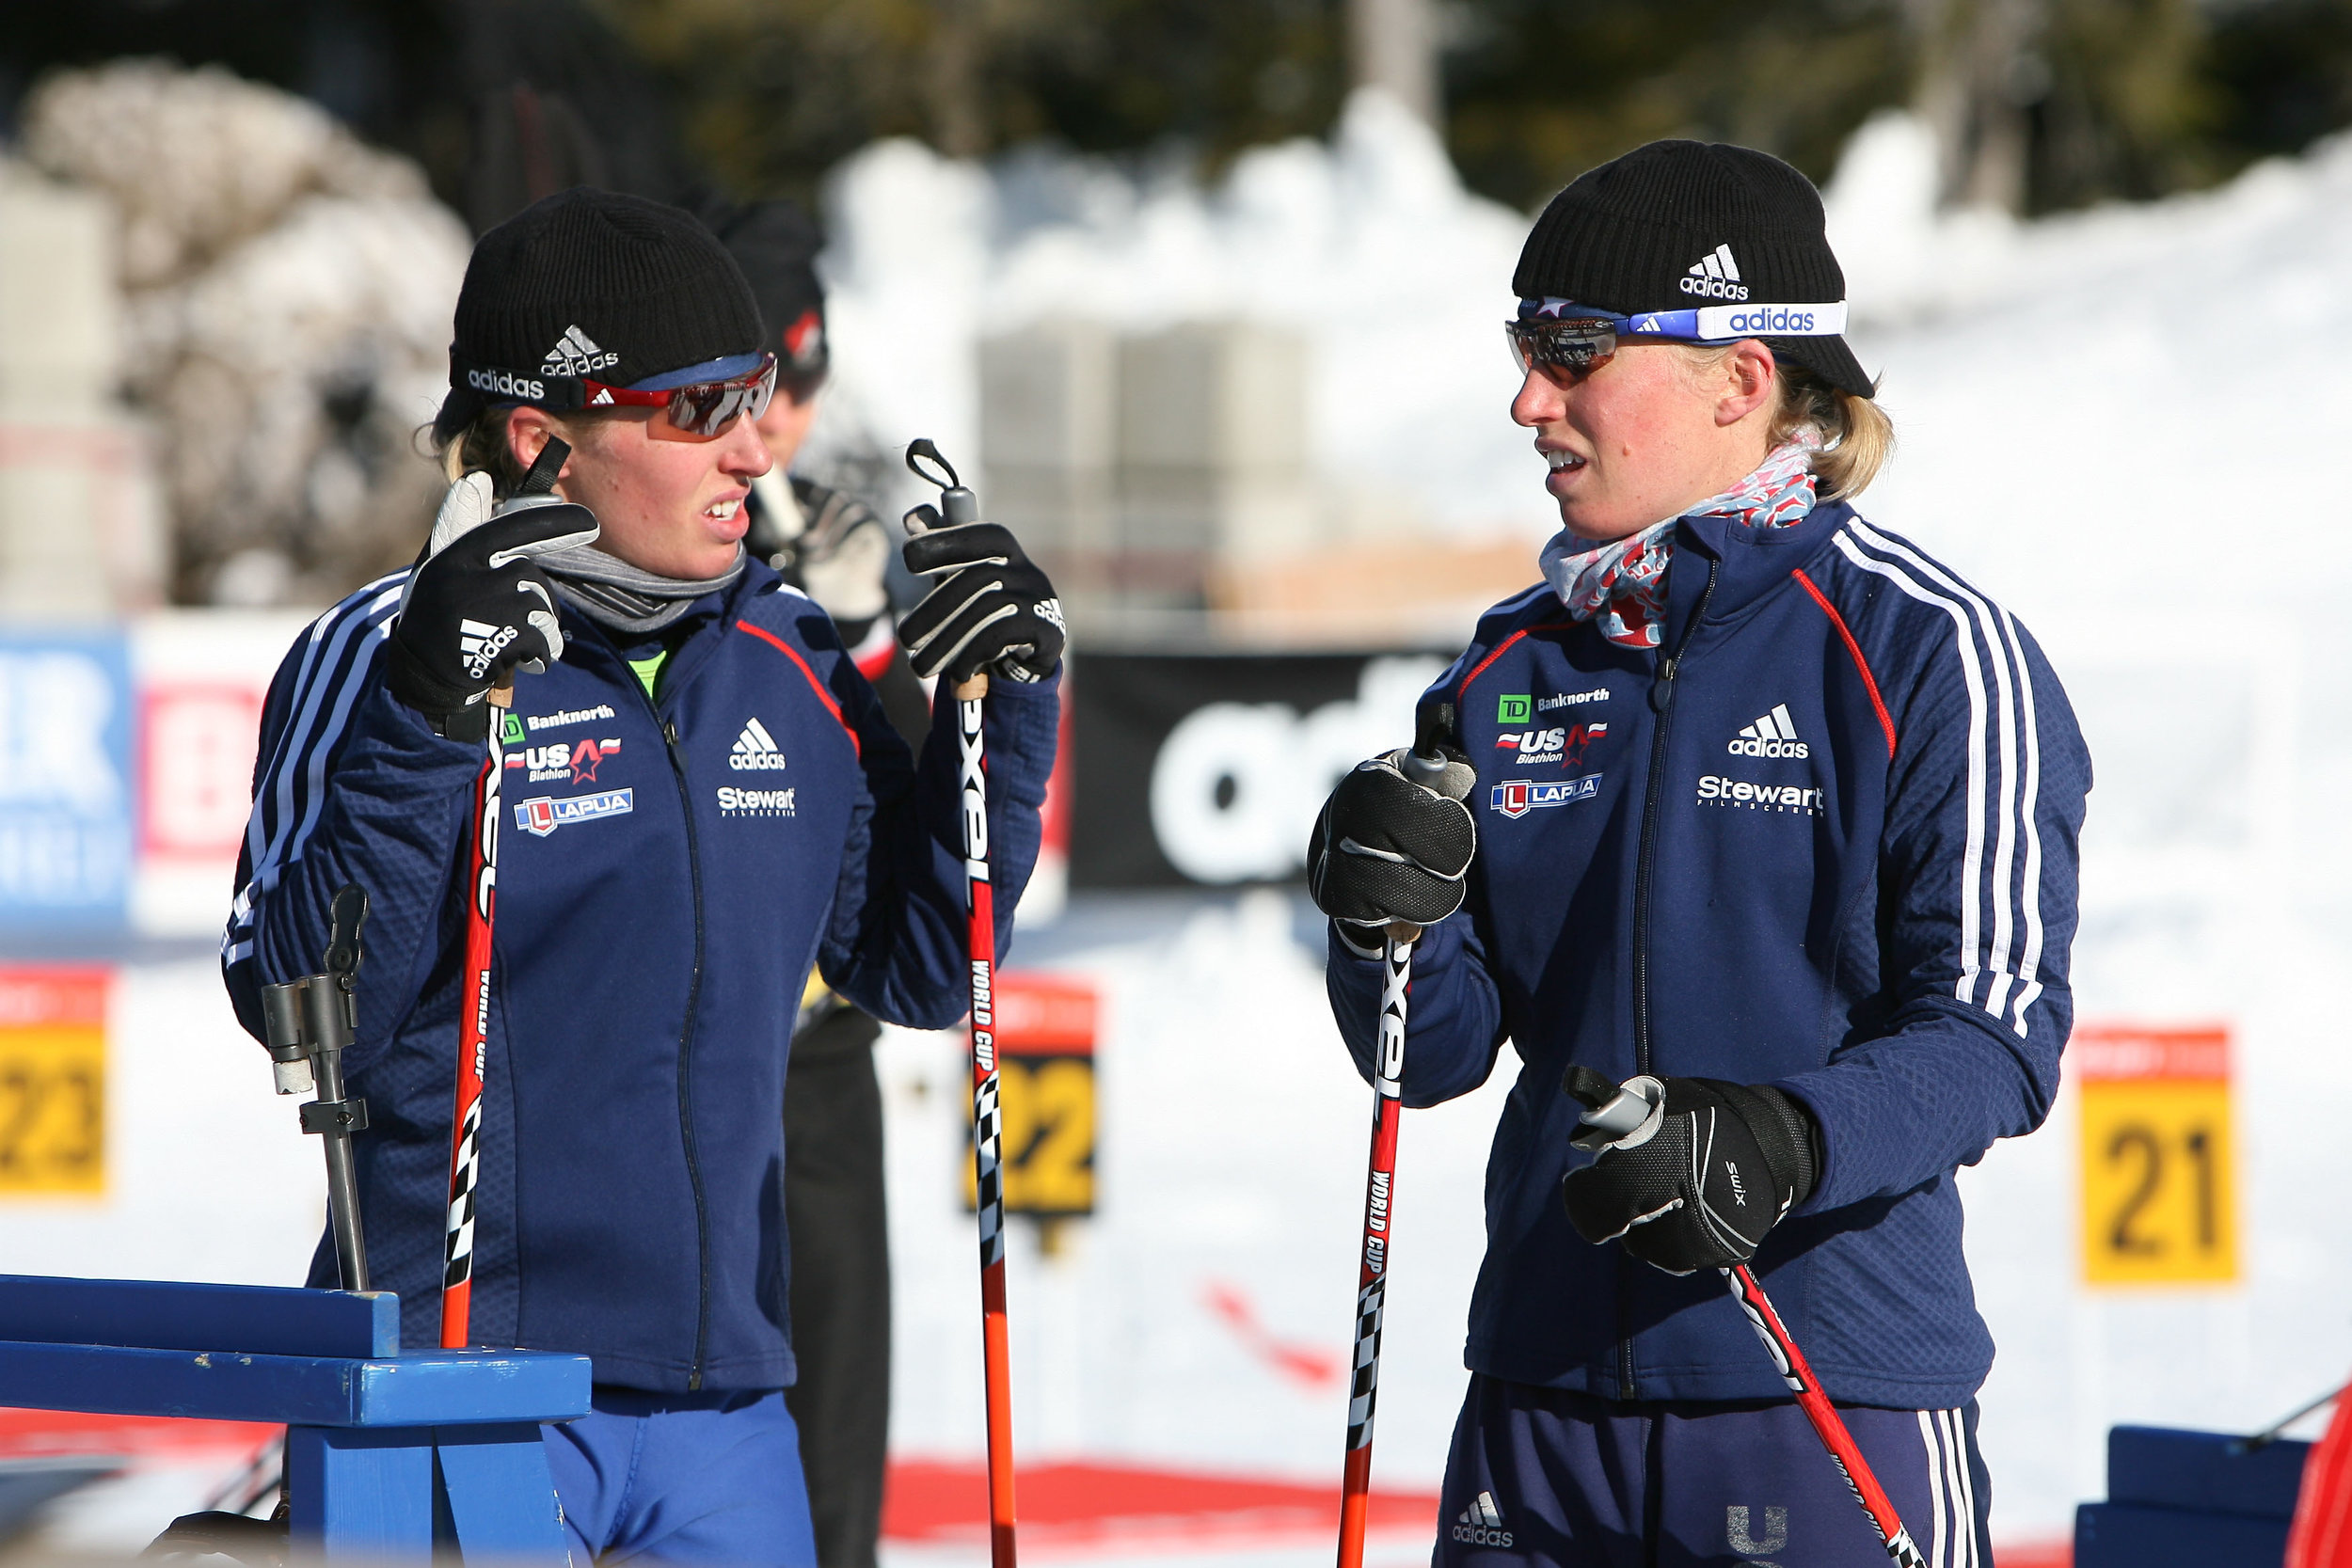 Tracy (left) and Lanny Barnes at a biathlon event in Vancouver // photo courtesy US Biathlon/Nordic Focus